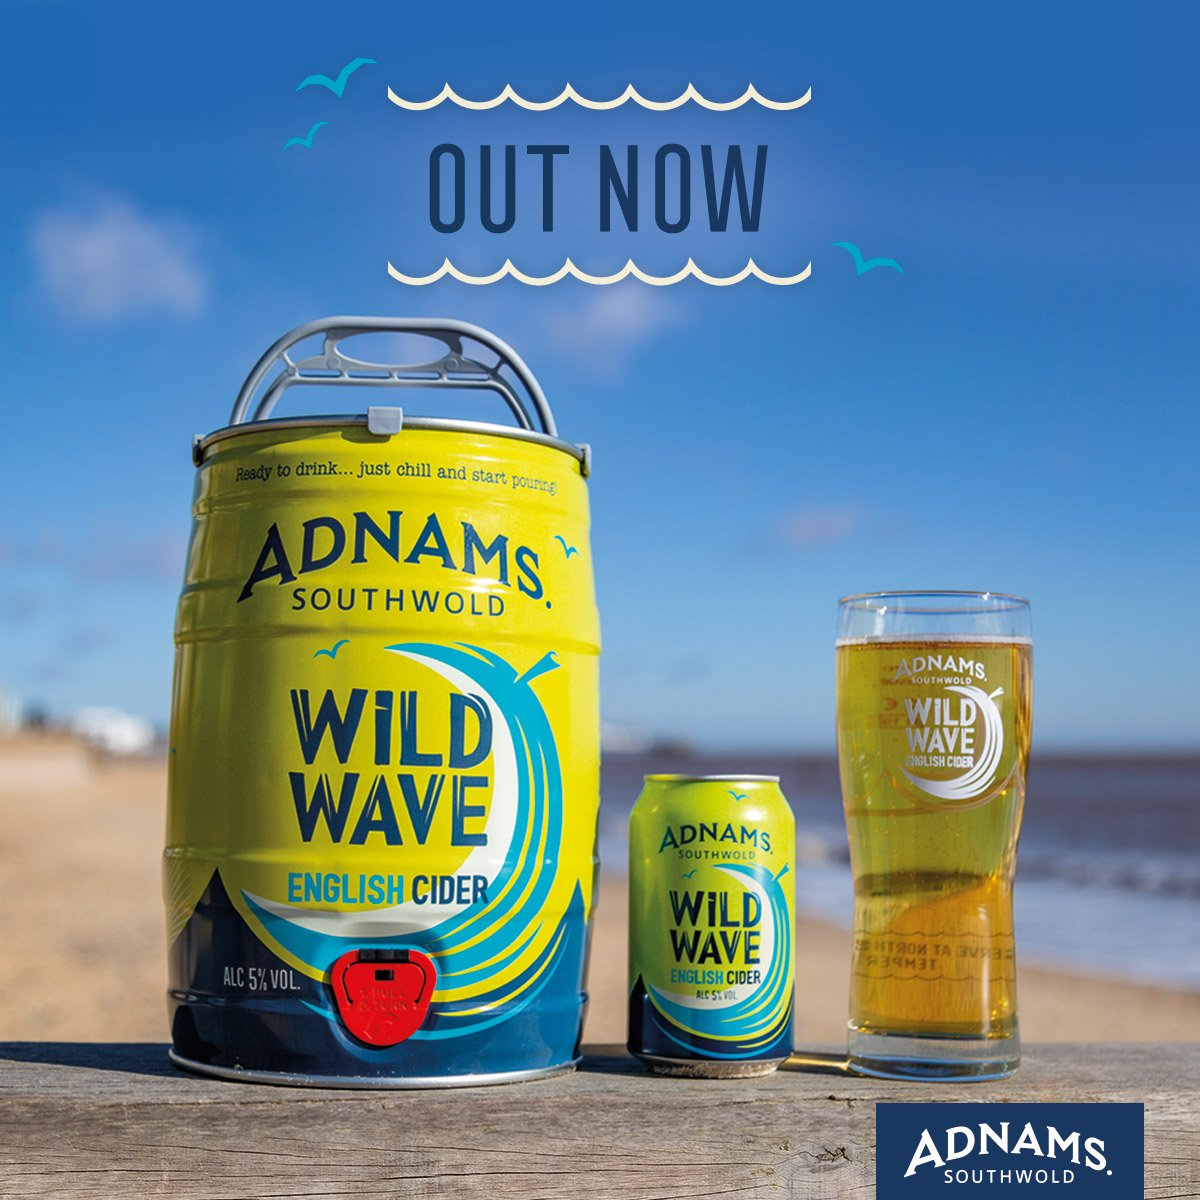 Adnams dives into cider market after Aspall sale